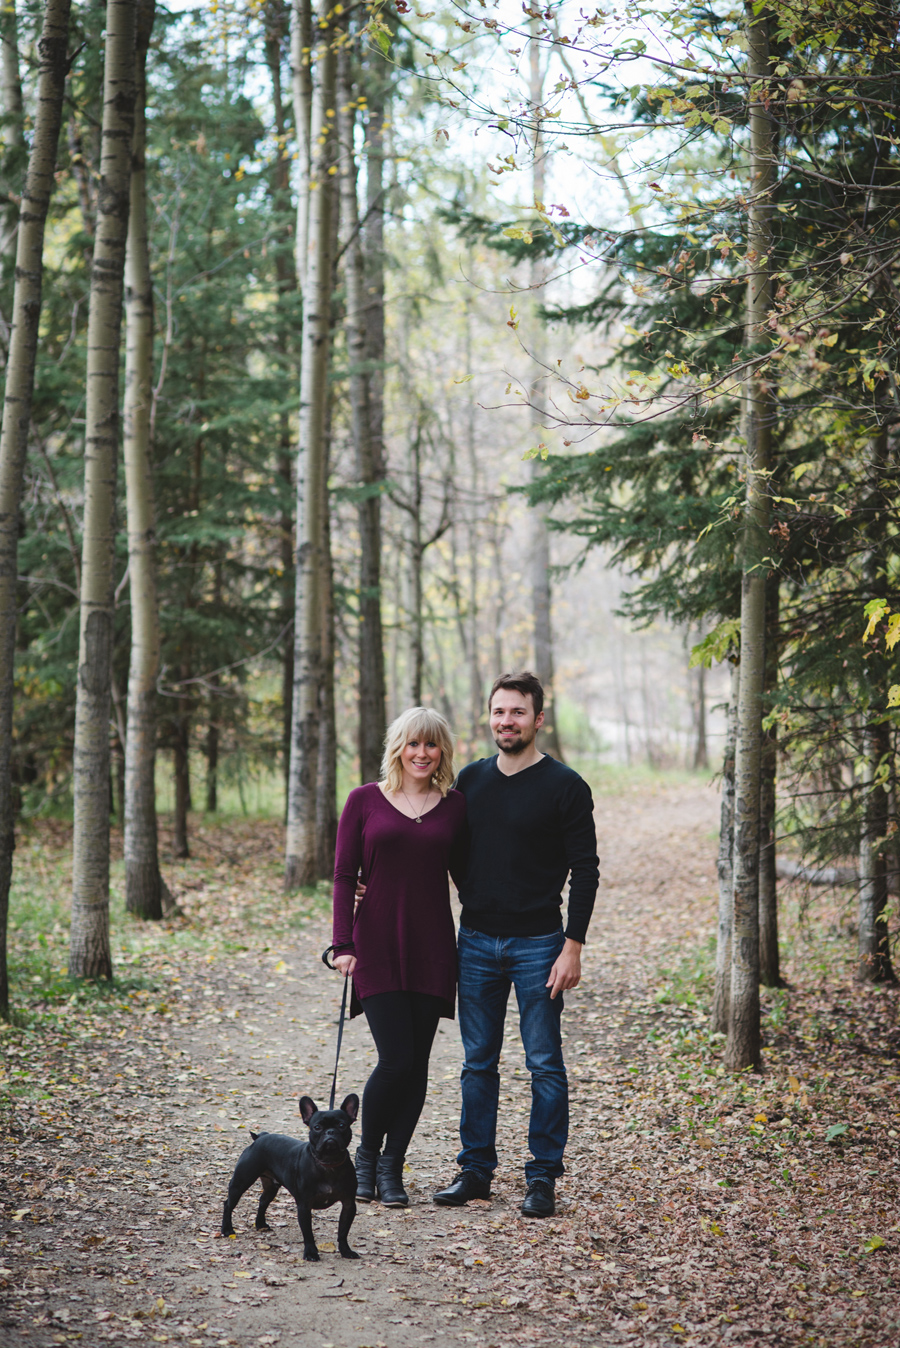 bbcollective_yeg_2016_robynandmichael_engagement_photography001.jpg